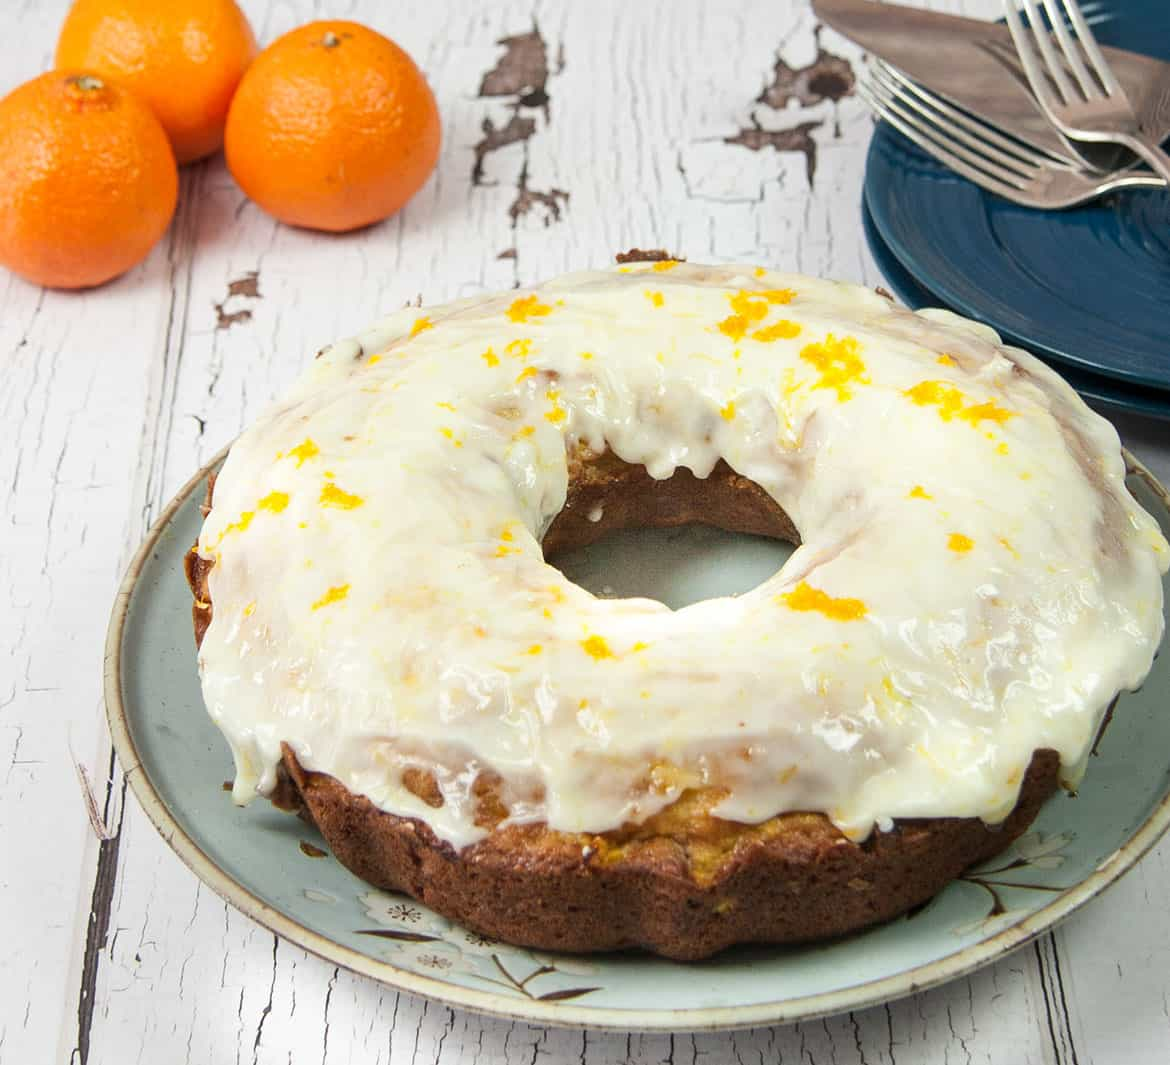 orange cranberry bundt cake with thick orange cranberry glaze orange zest on top blue plates and silver forks in right background three oranges in left background on white weathered wood table